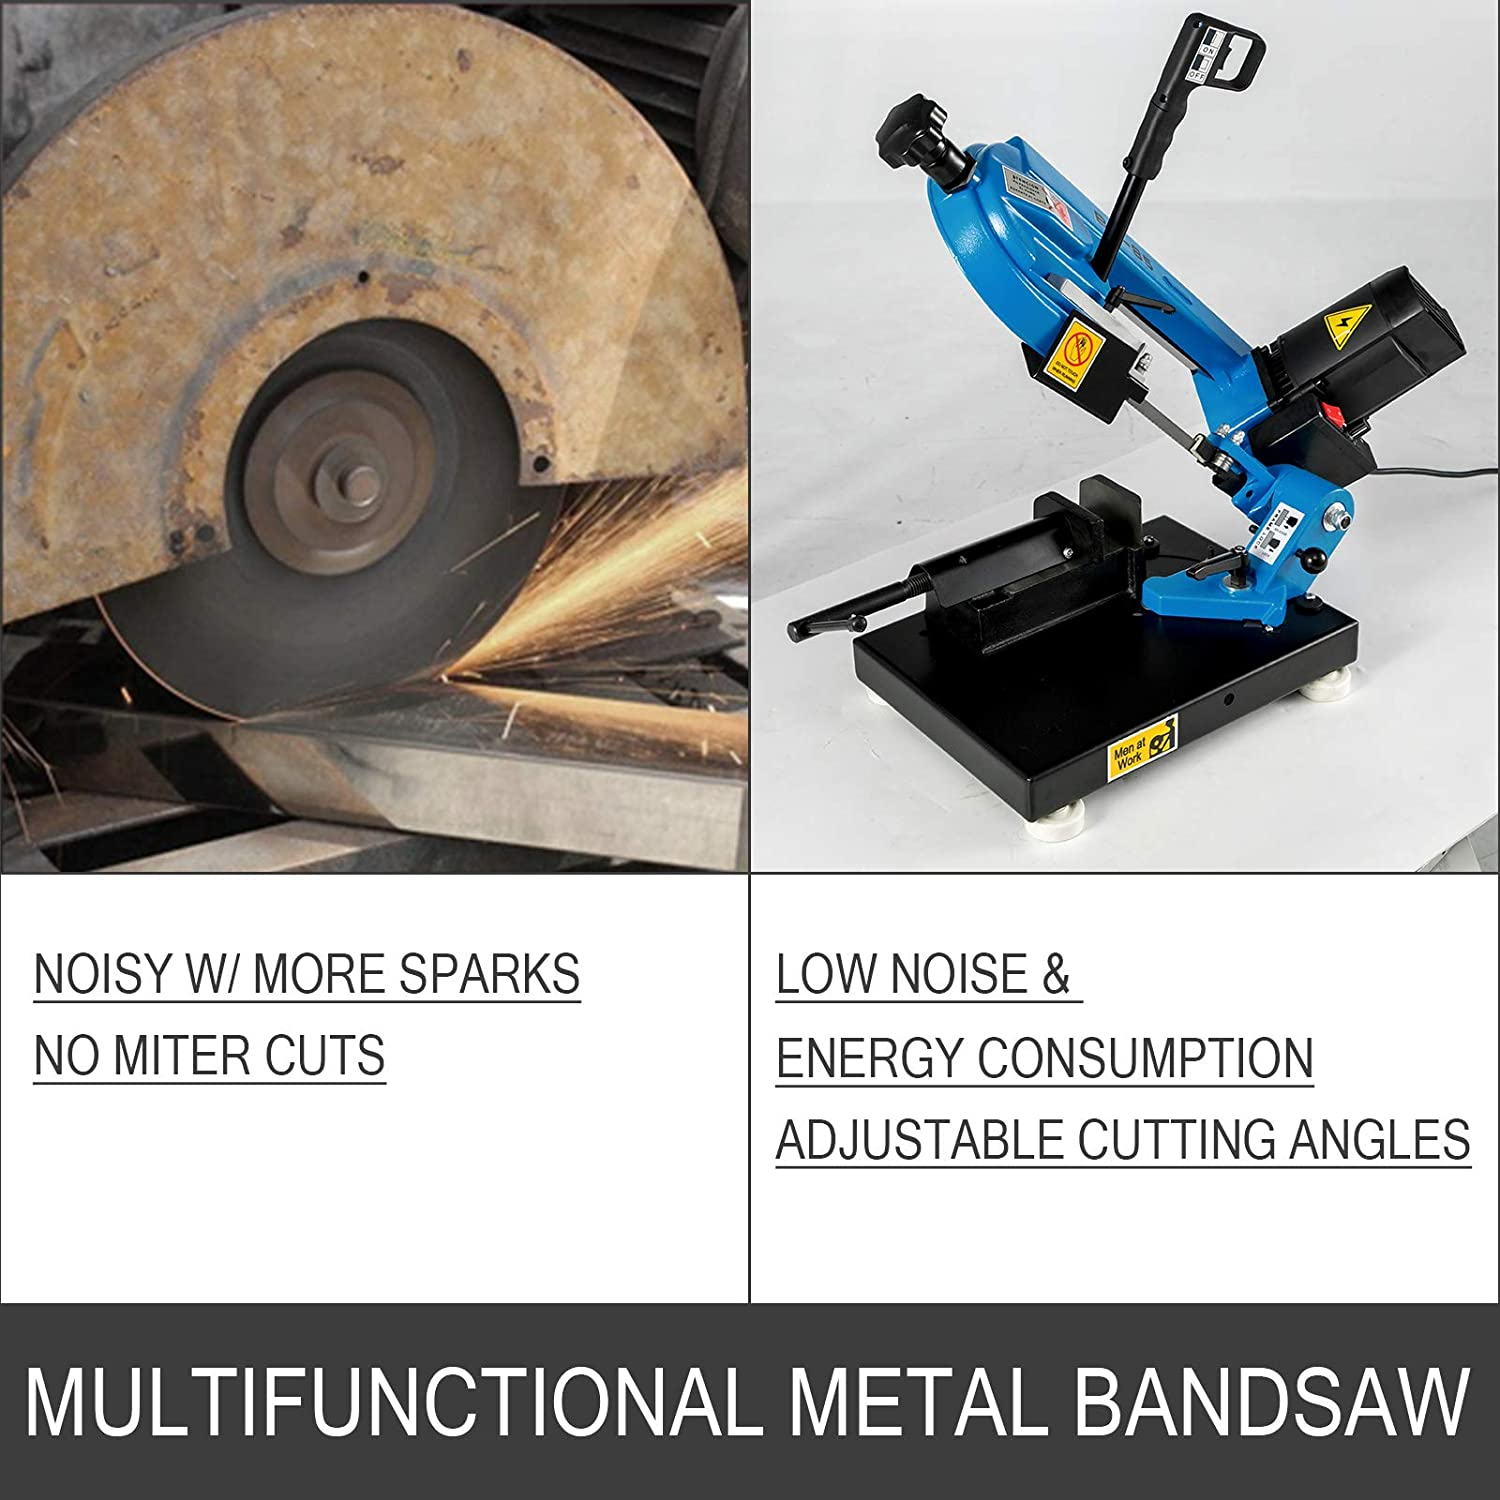 BS-85 Benchtop Metal Bandsaw 1000W  Band Saw For Cutting Wood Metal Glass Fiber Plastic enlarge